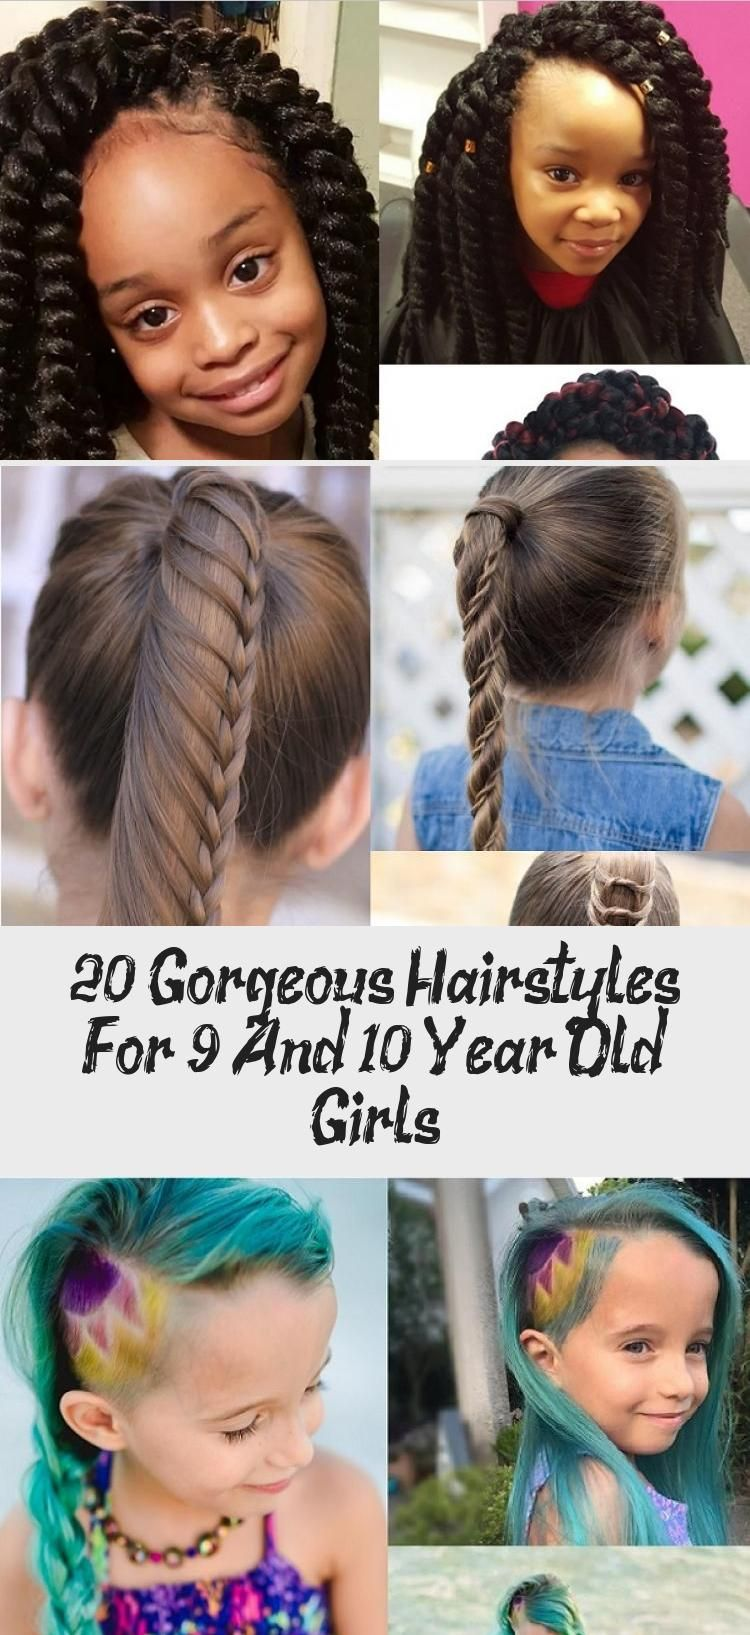 20 Gorgeous Hairstyles For 9 And 10 Year Old Girls Child Insider Everydayhairstyles Fine Everydayhairstyles W In 2020 Gorgeous Hair Hair Styles Everyday Hairstyles